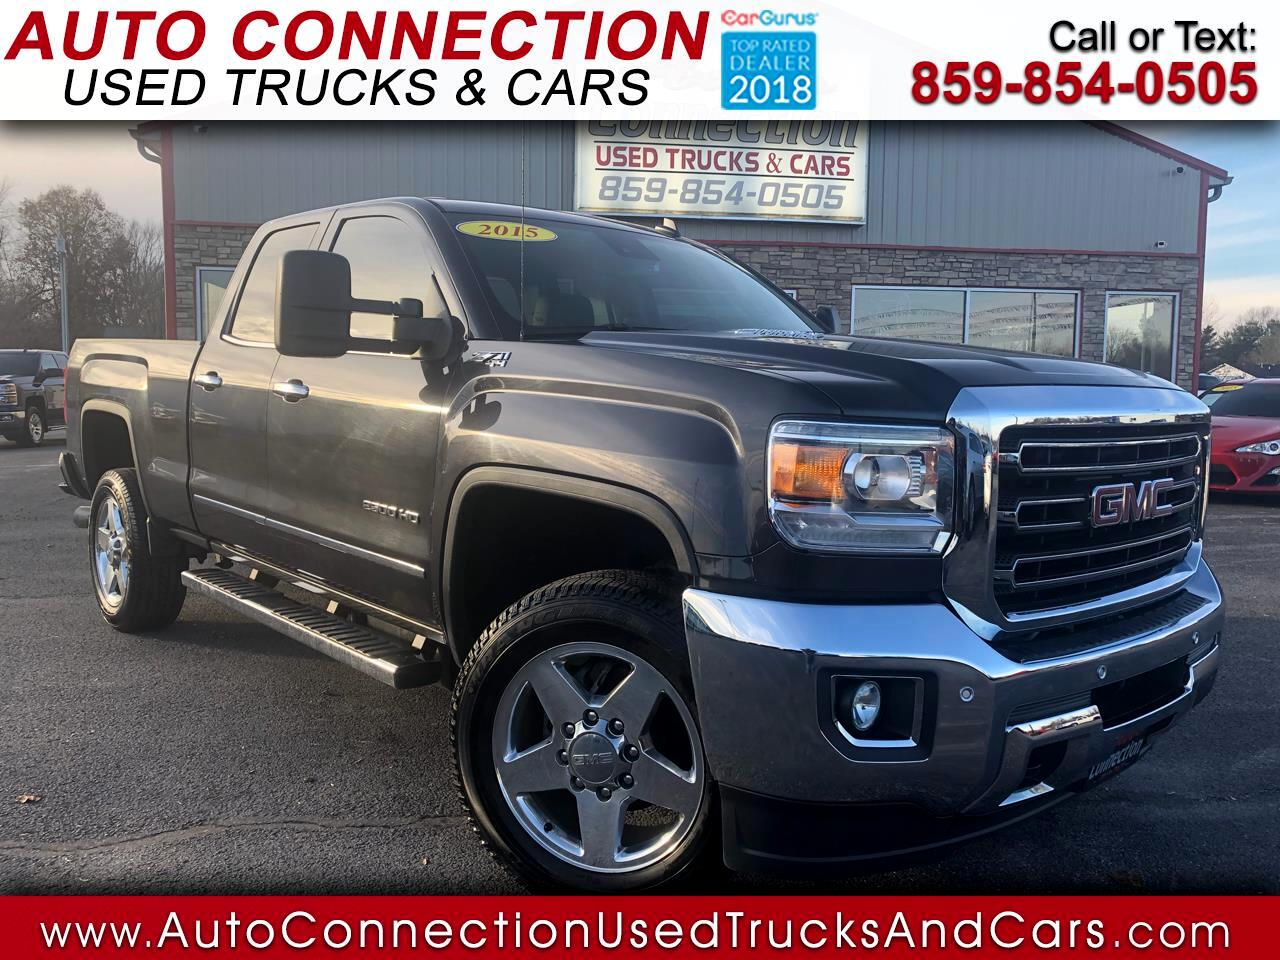 "2015 GMC Sierra 2500HD 4WD Double Cab 144.2"" SLT"